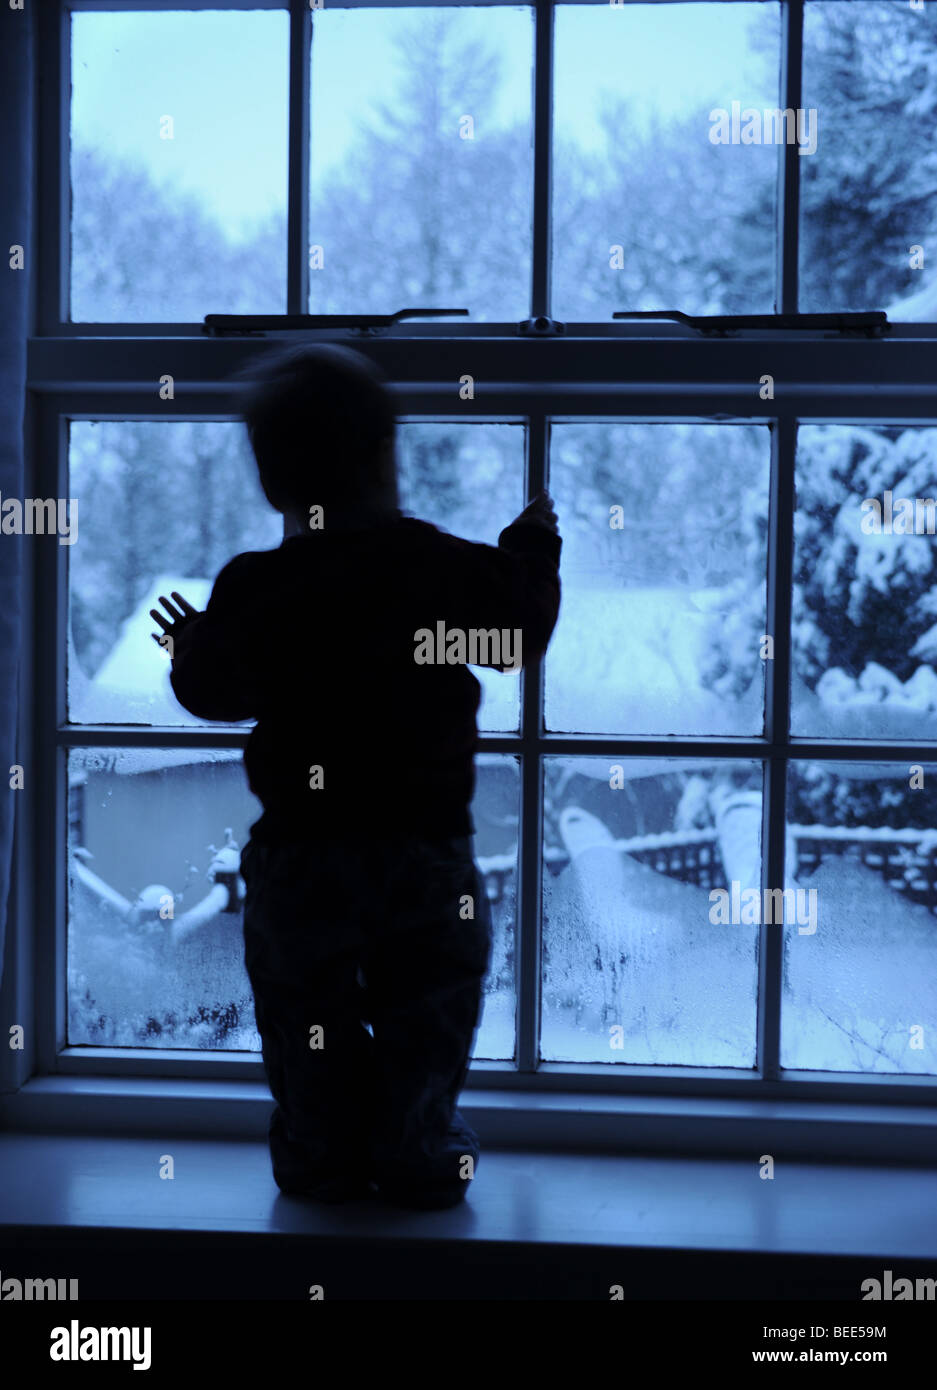 Boy in window looking at snow outside - Stock Image